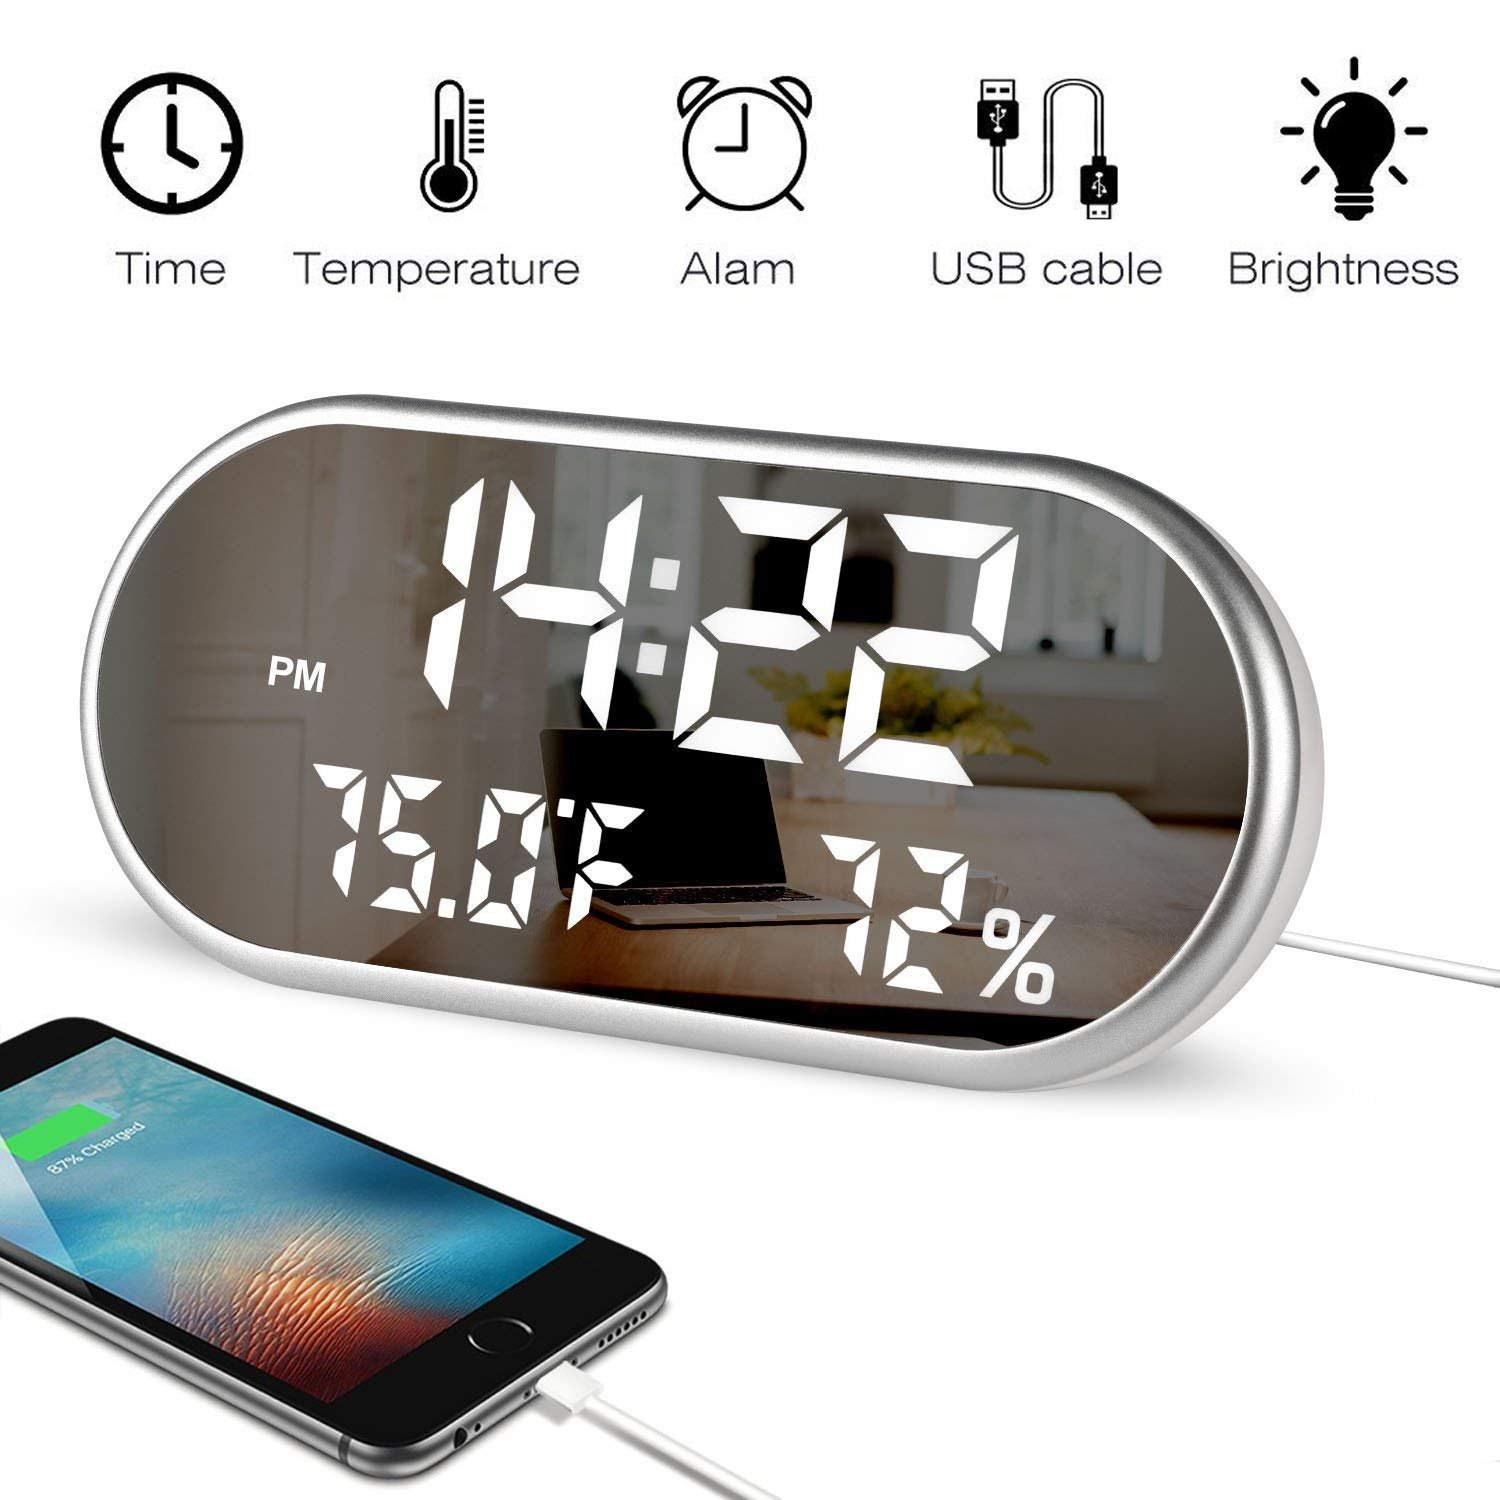 Elecstars Digital Alarm Clock, Portable Mirror Large LED Display,Dual USB Port Charging, Easy Set Three Alarms,Temperature and Humidity Clock for Bedrooms ESCA-JP8803